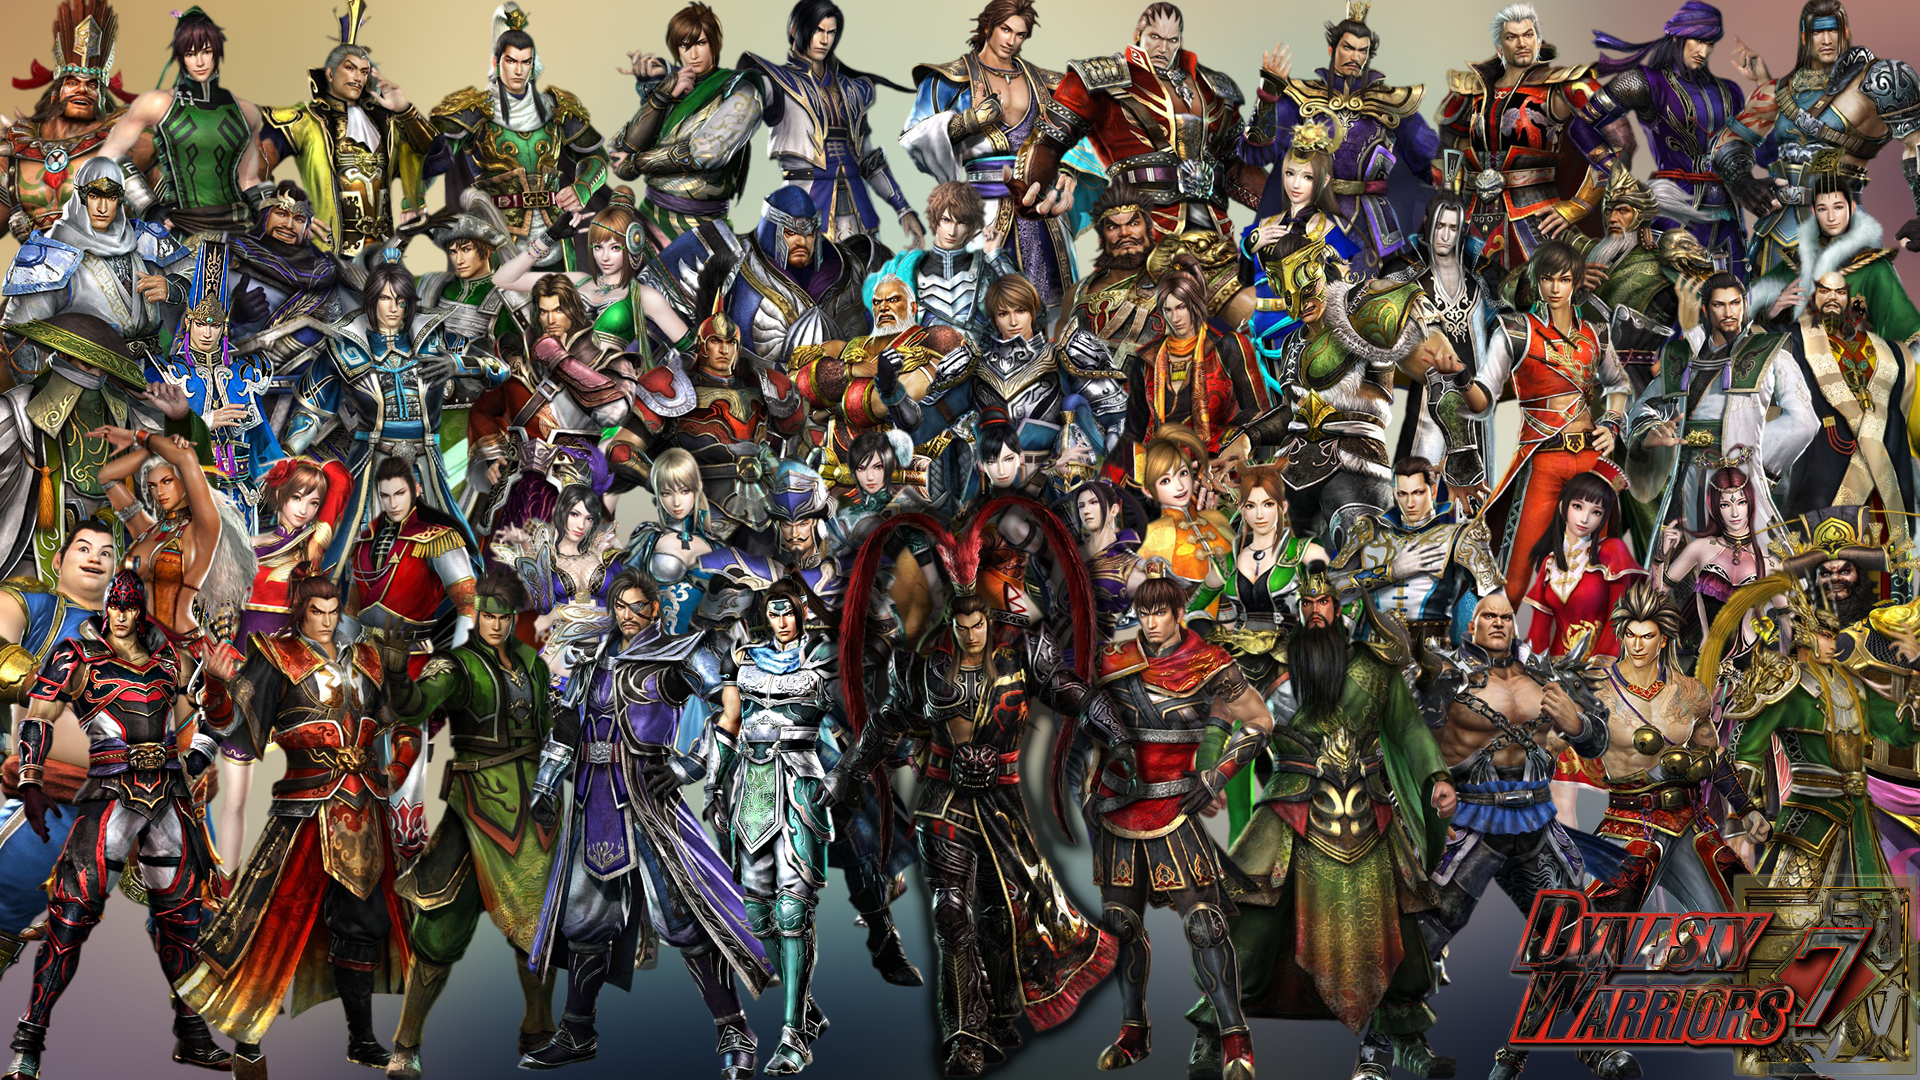 dynasty warriors Gamestop: buy dynasty warriors 9, tecmo koei america corporation, playstation 4, find release dates, customer reviews, previews and screenshots.